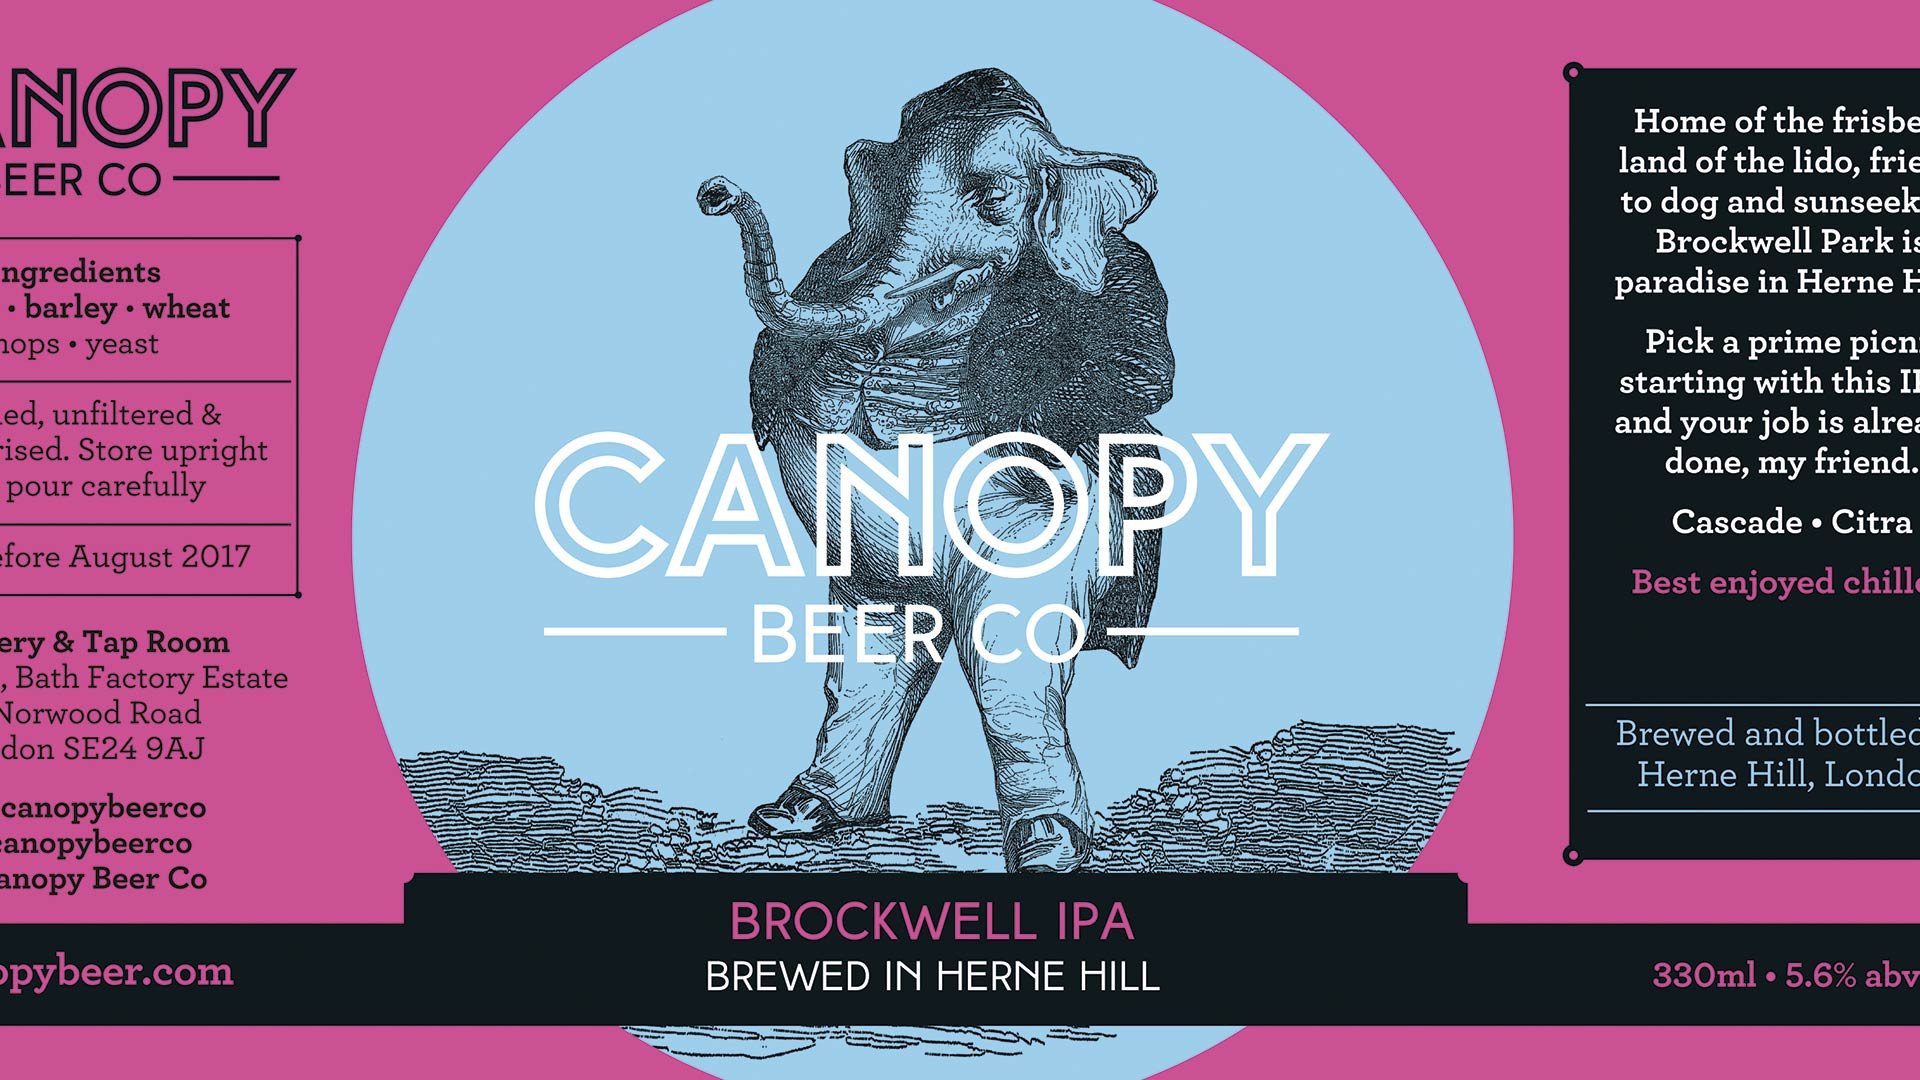 Canopy Beer Co's eye-catching label